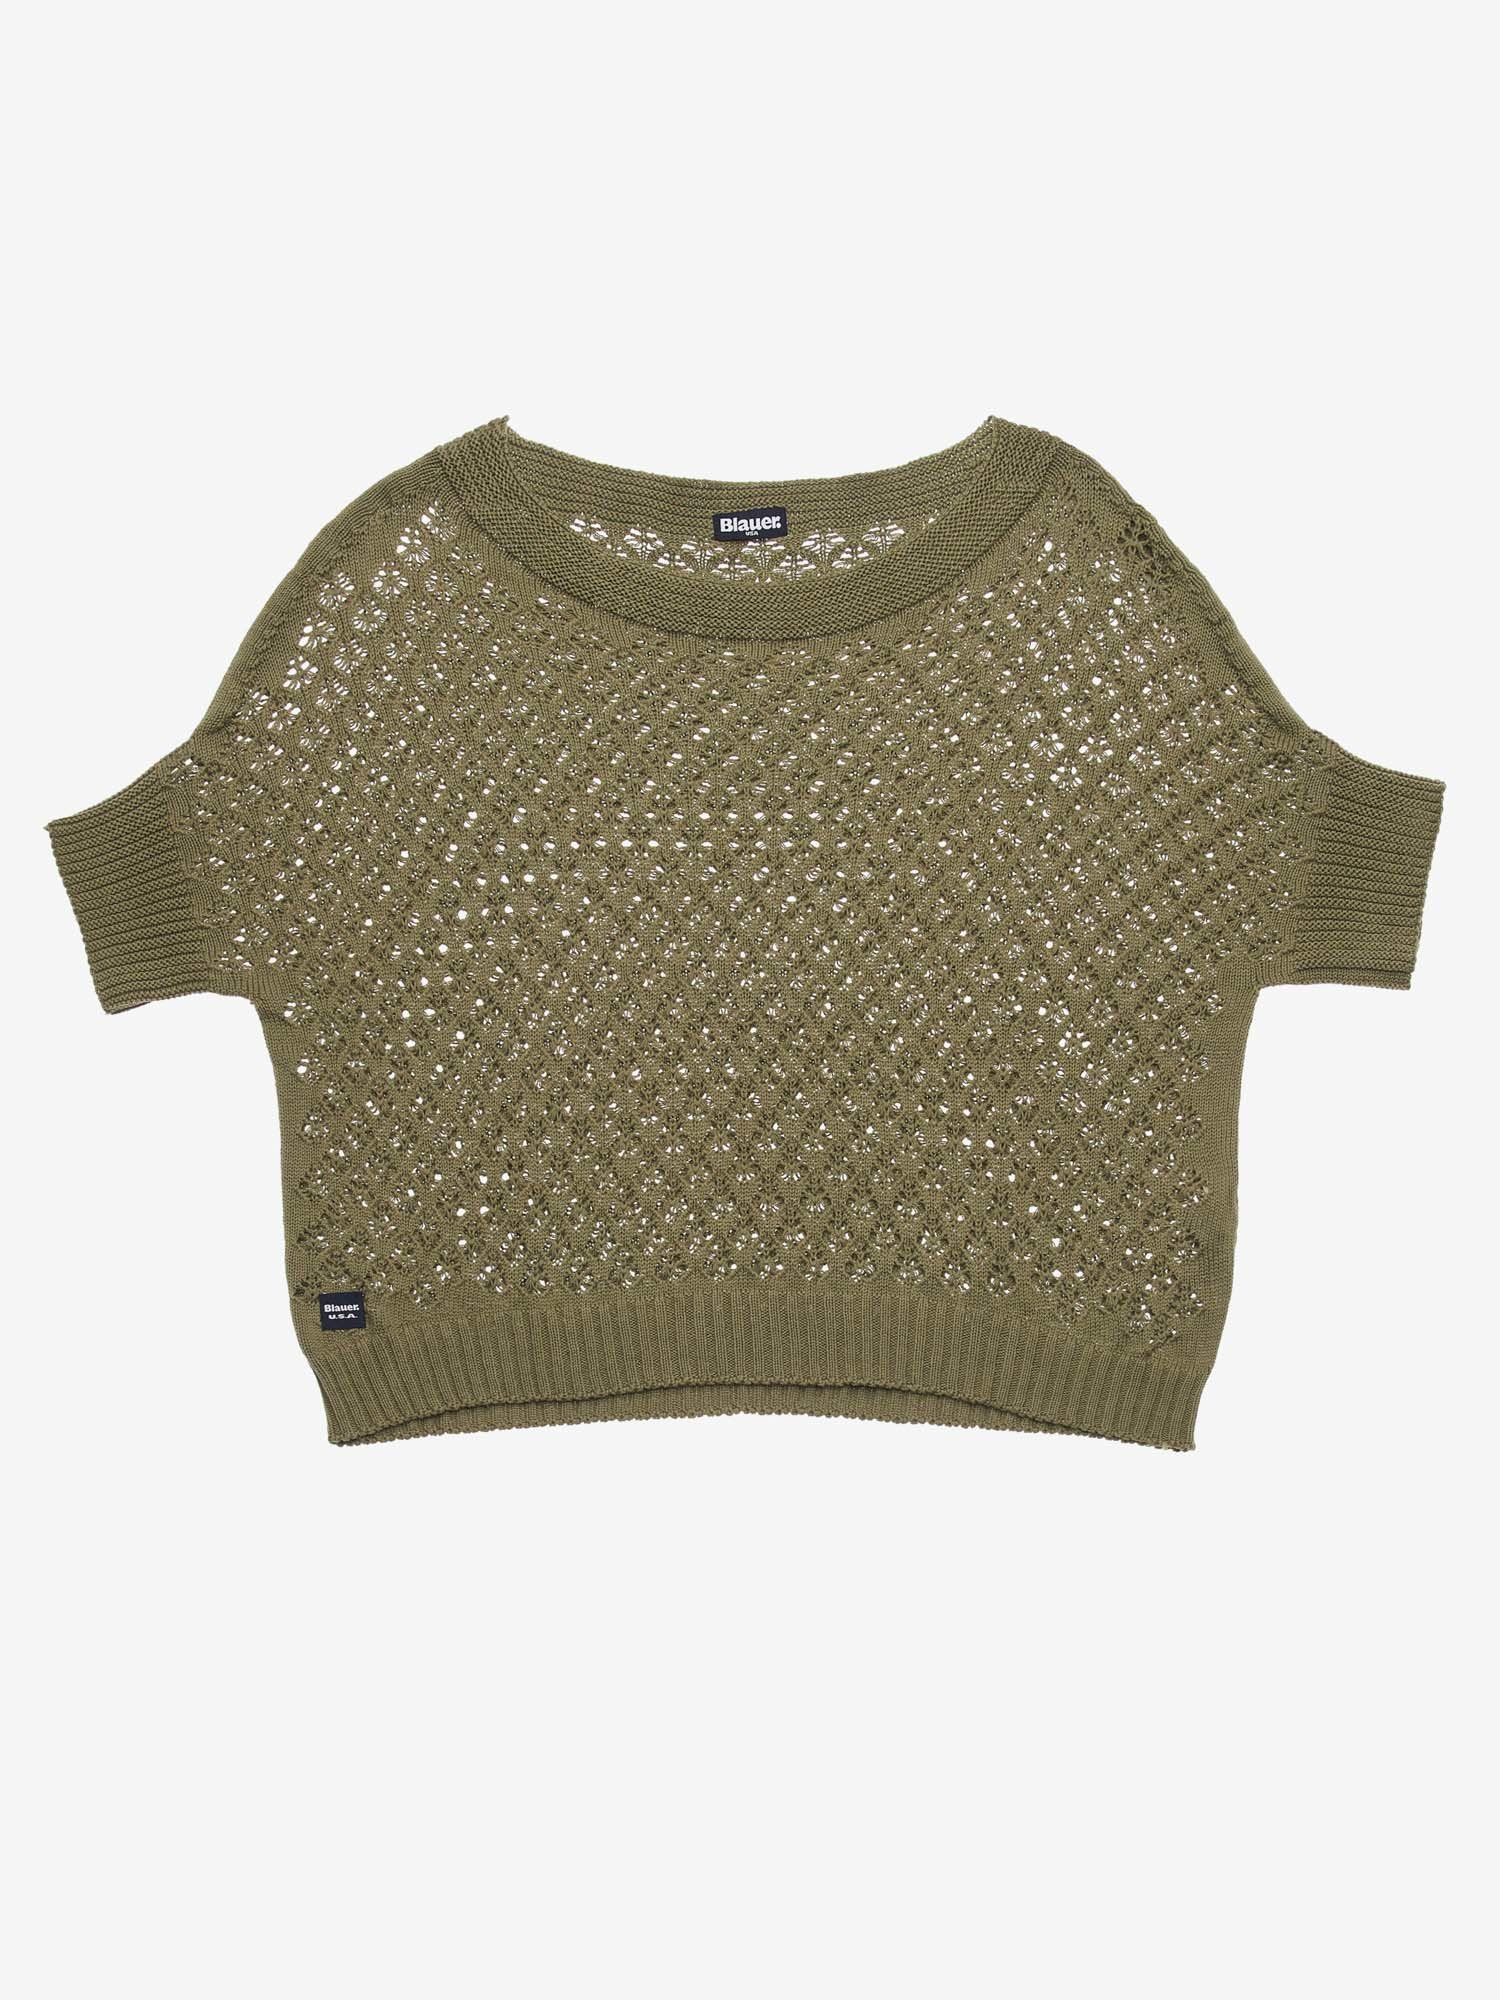 SHORT LACE-EFFECT SWEATER - Blauer